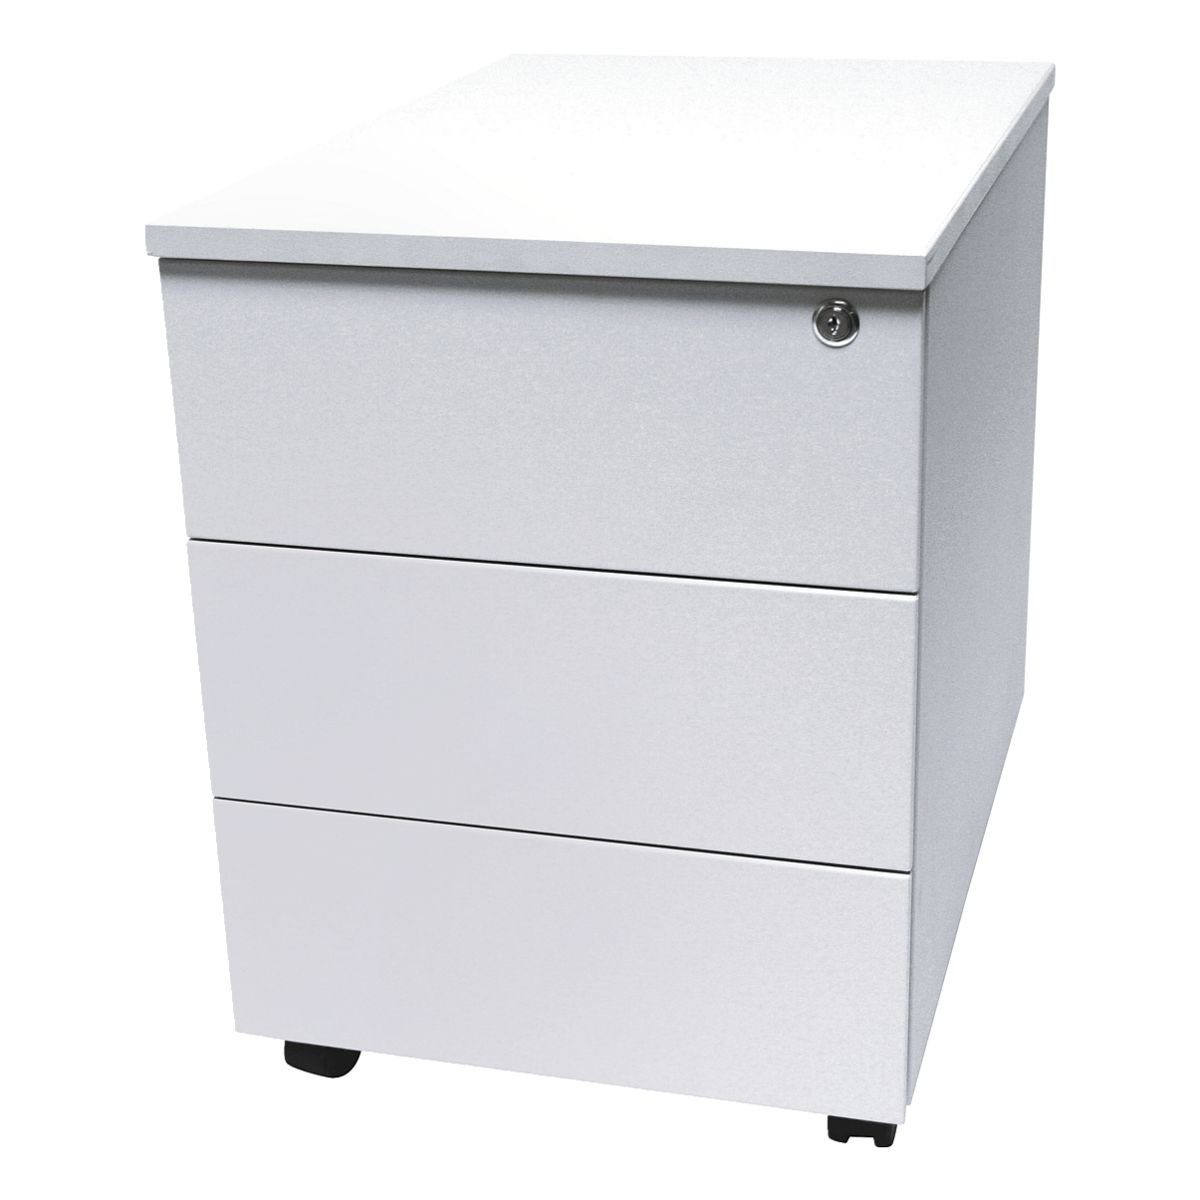 Rollcontainer »Eco«